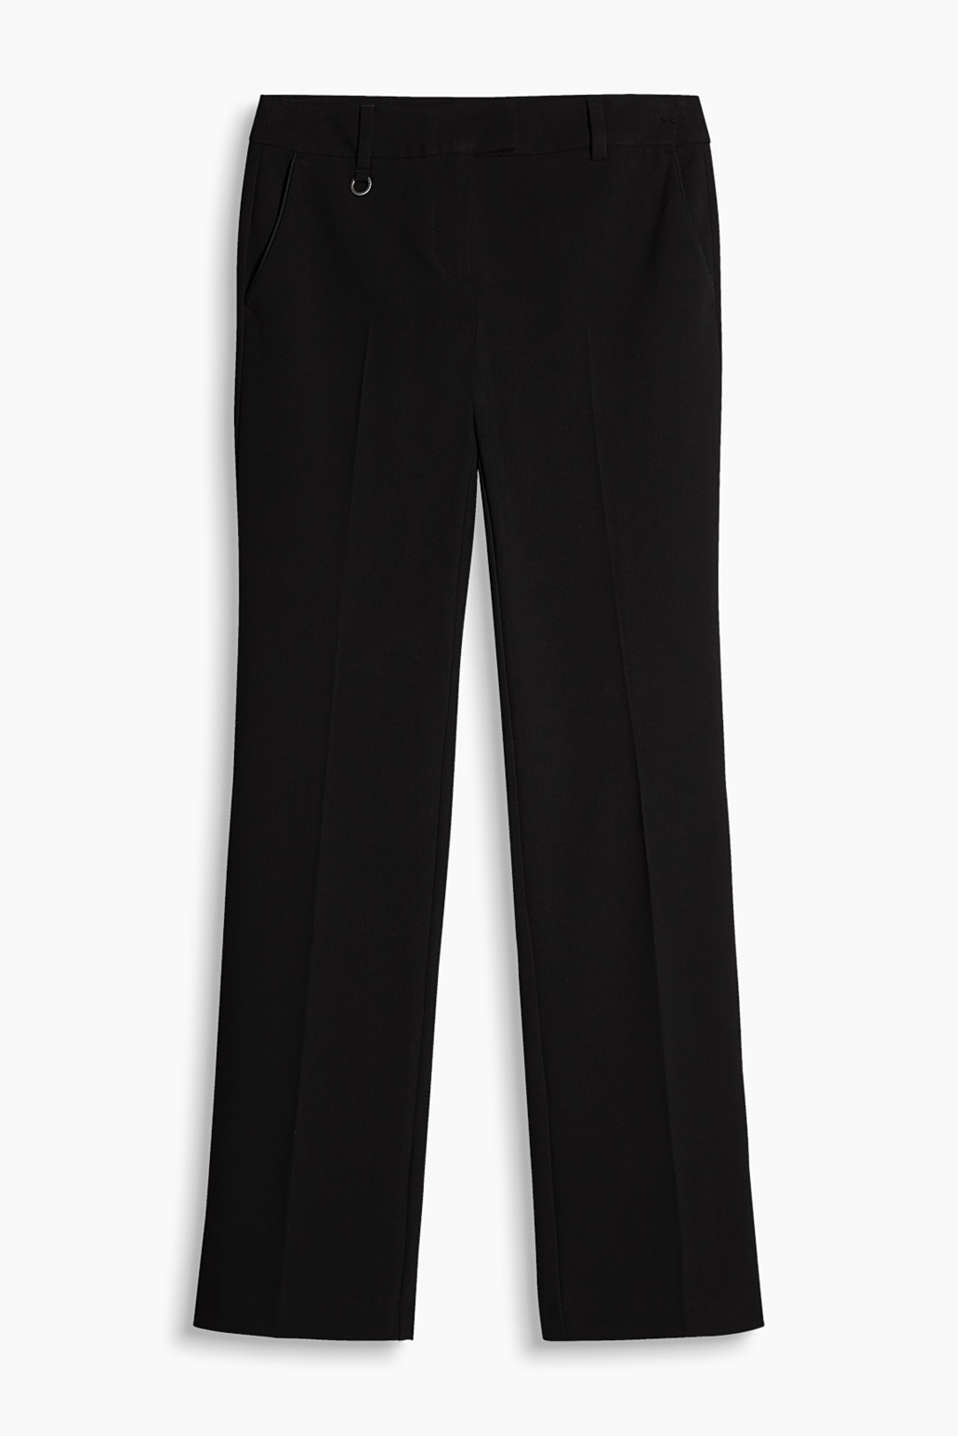 Elegant stretch trousers with satin piping for work and special occasions